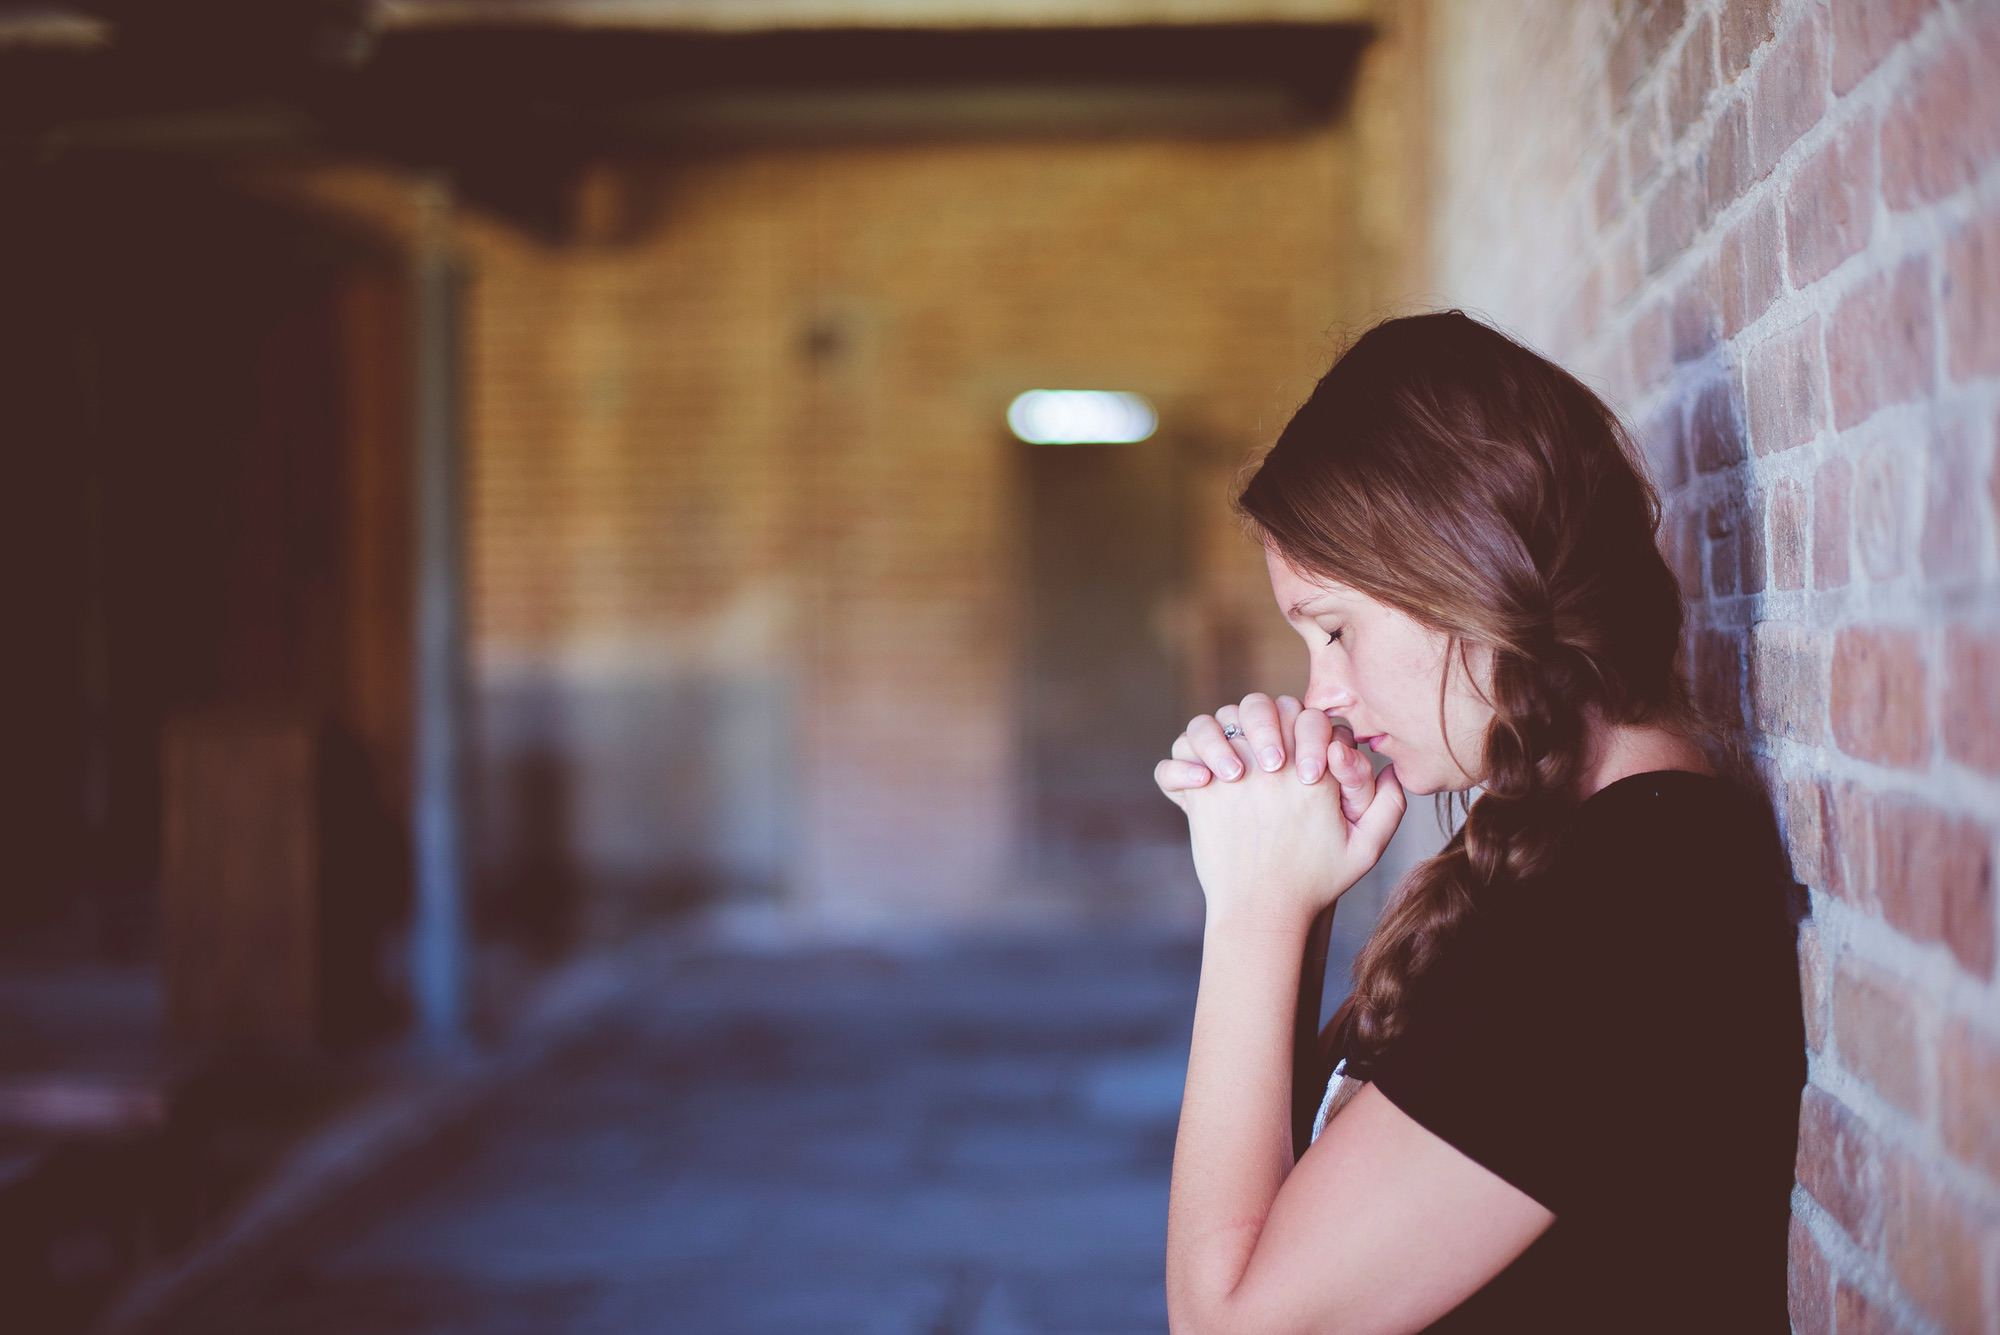 Does prayer make you a healthier person? Science says yes. 2